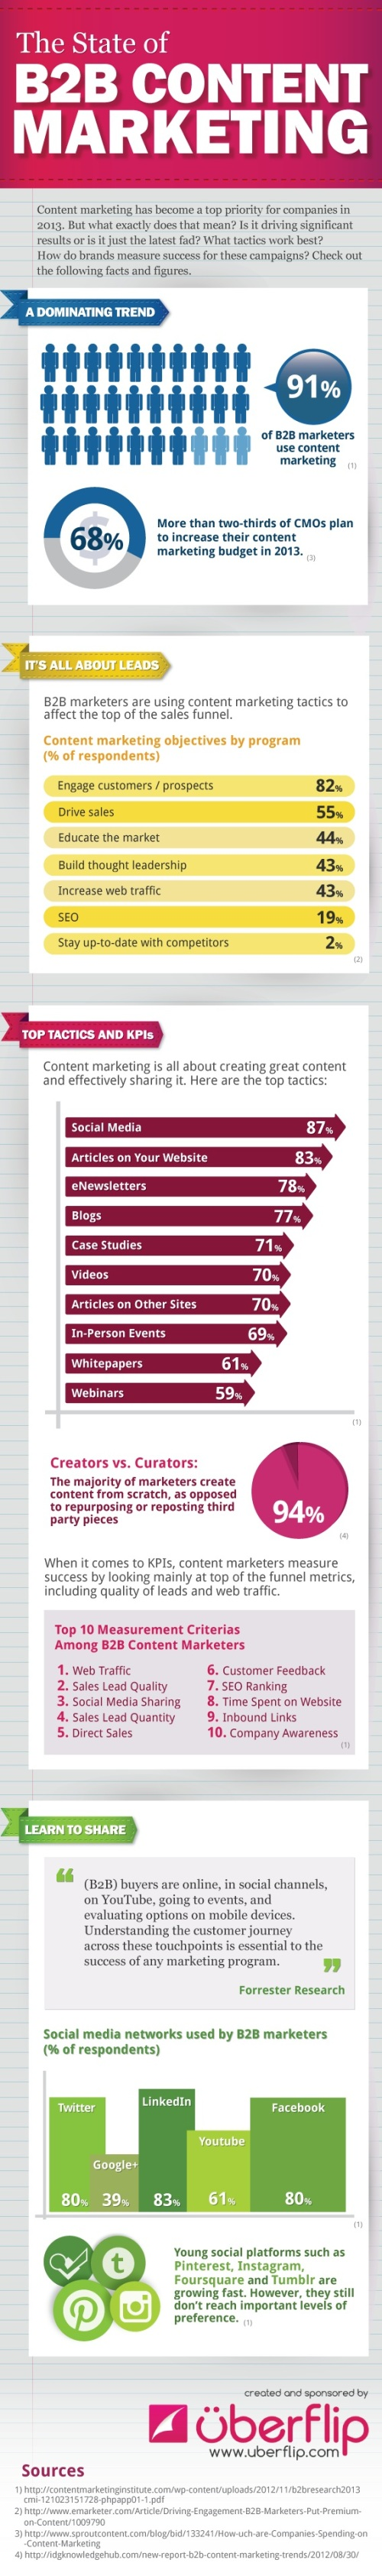 state-of-b2b-content-marketing